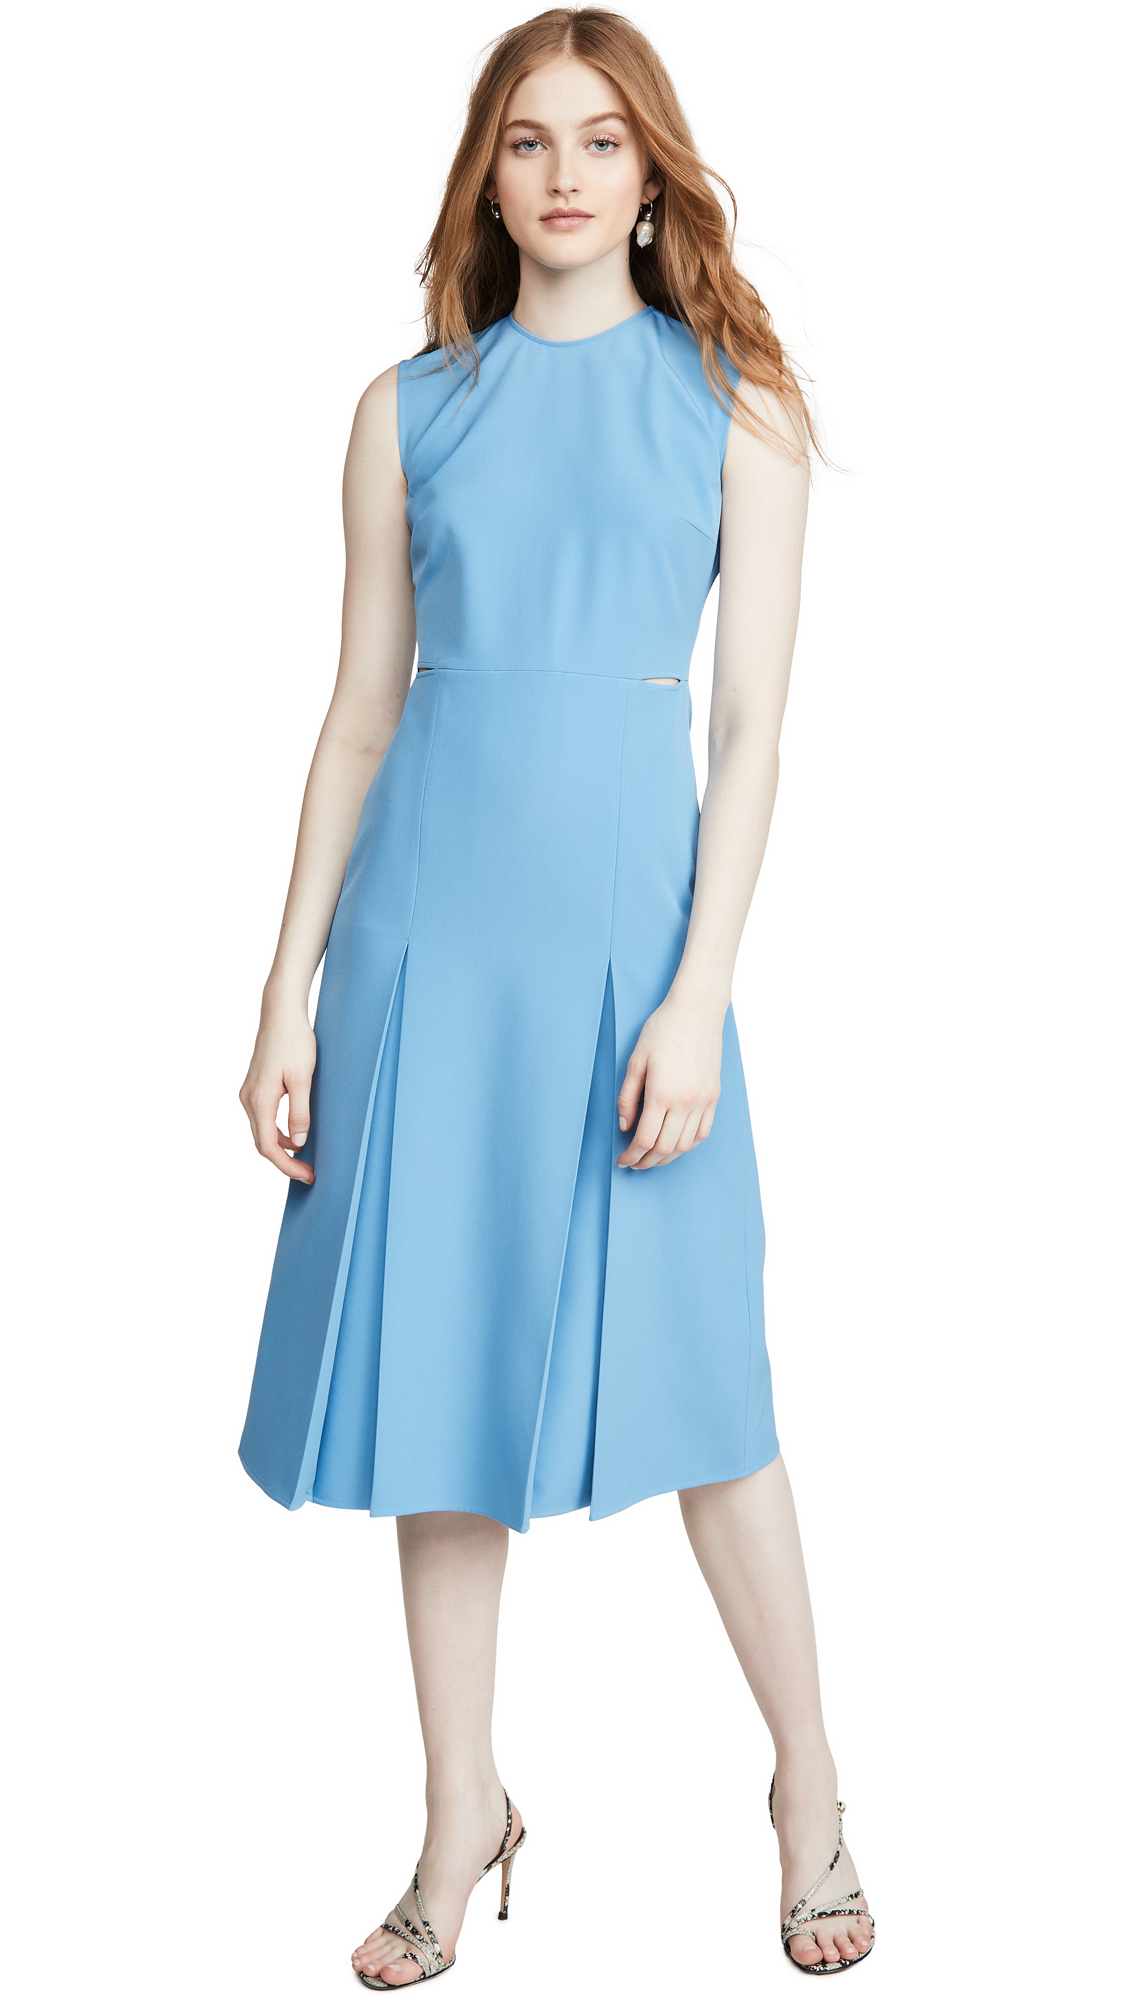 Victoria Victoria Beckham Slit Detail Dress - 40% Off Sale